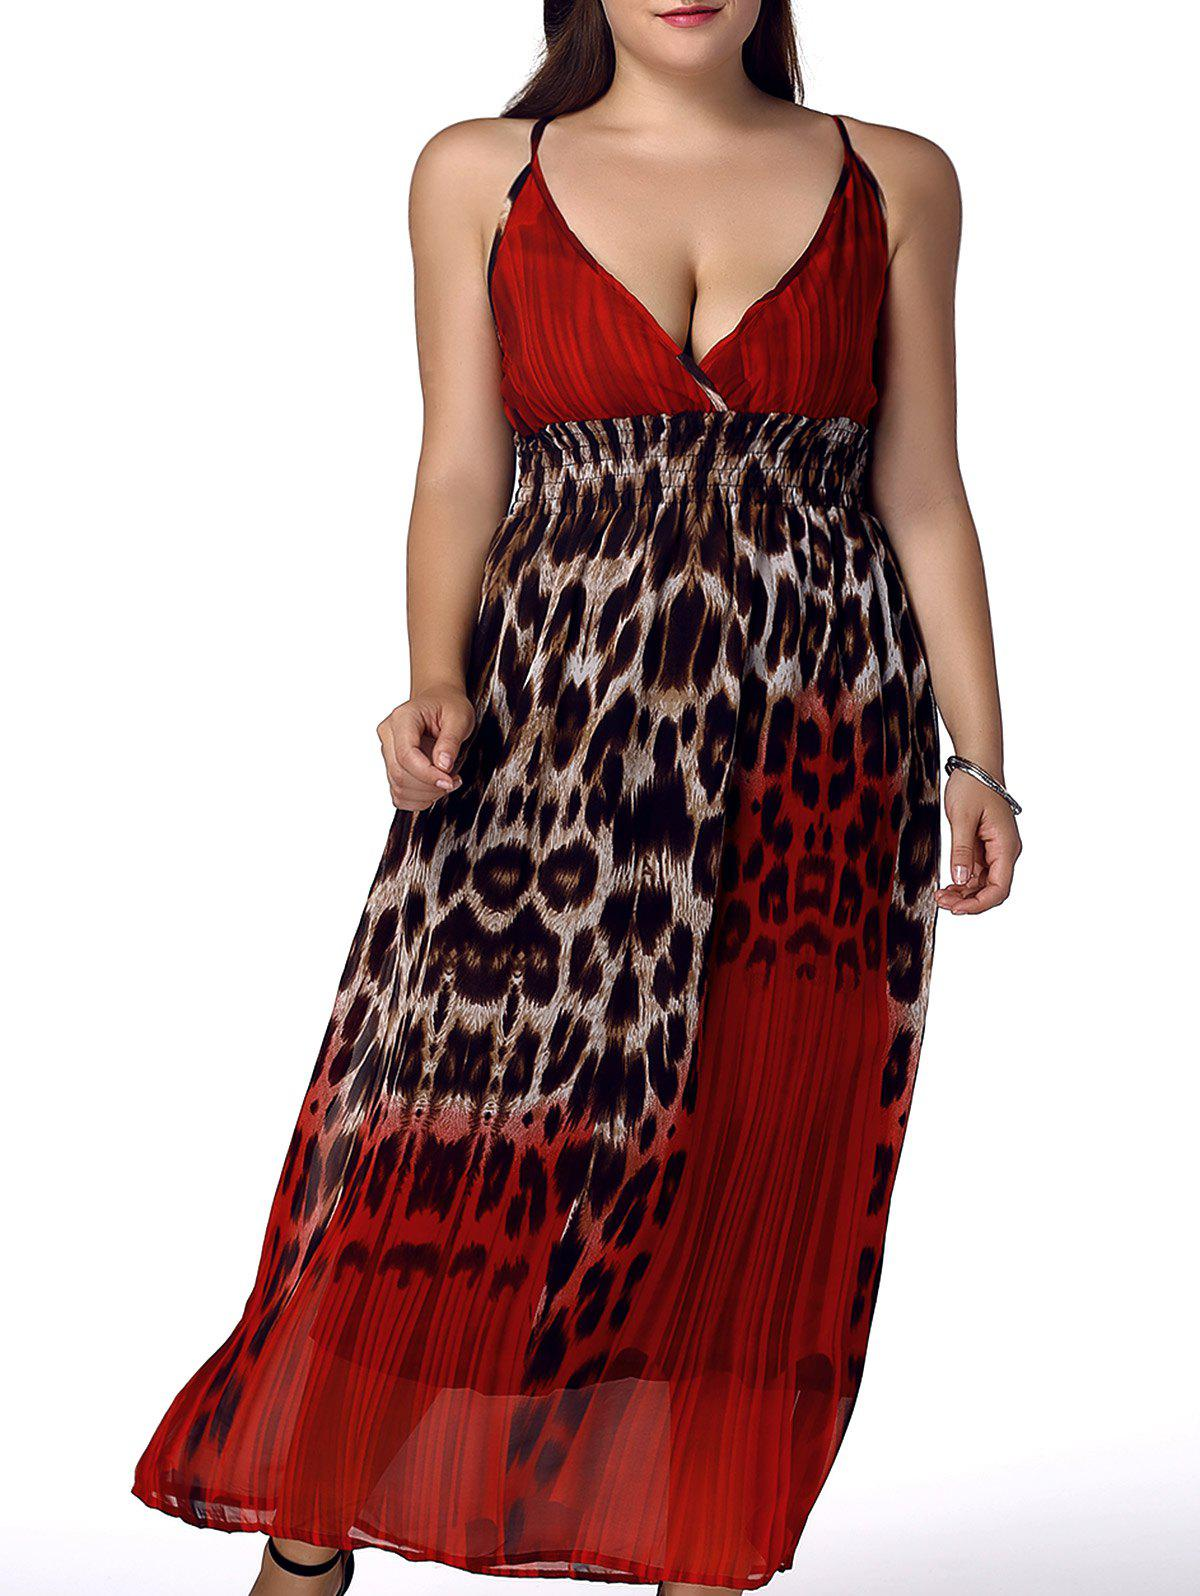 Bohemian Plus Size Sleeveless Spaghetti Strap Leopard Print Women's Dress - RED 4XL